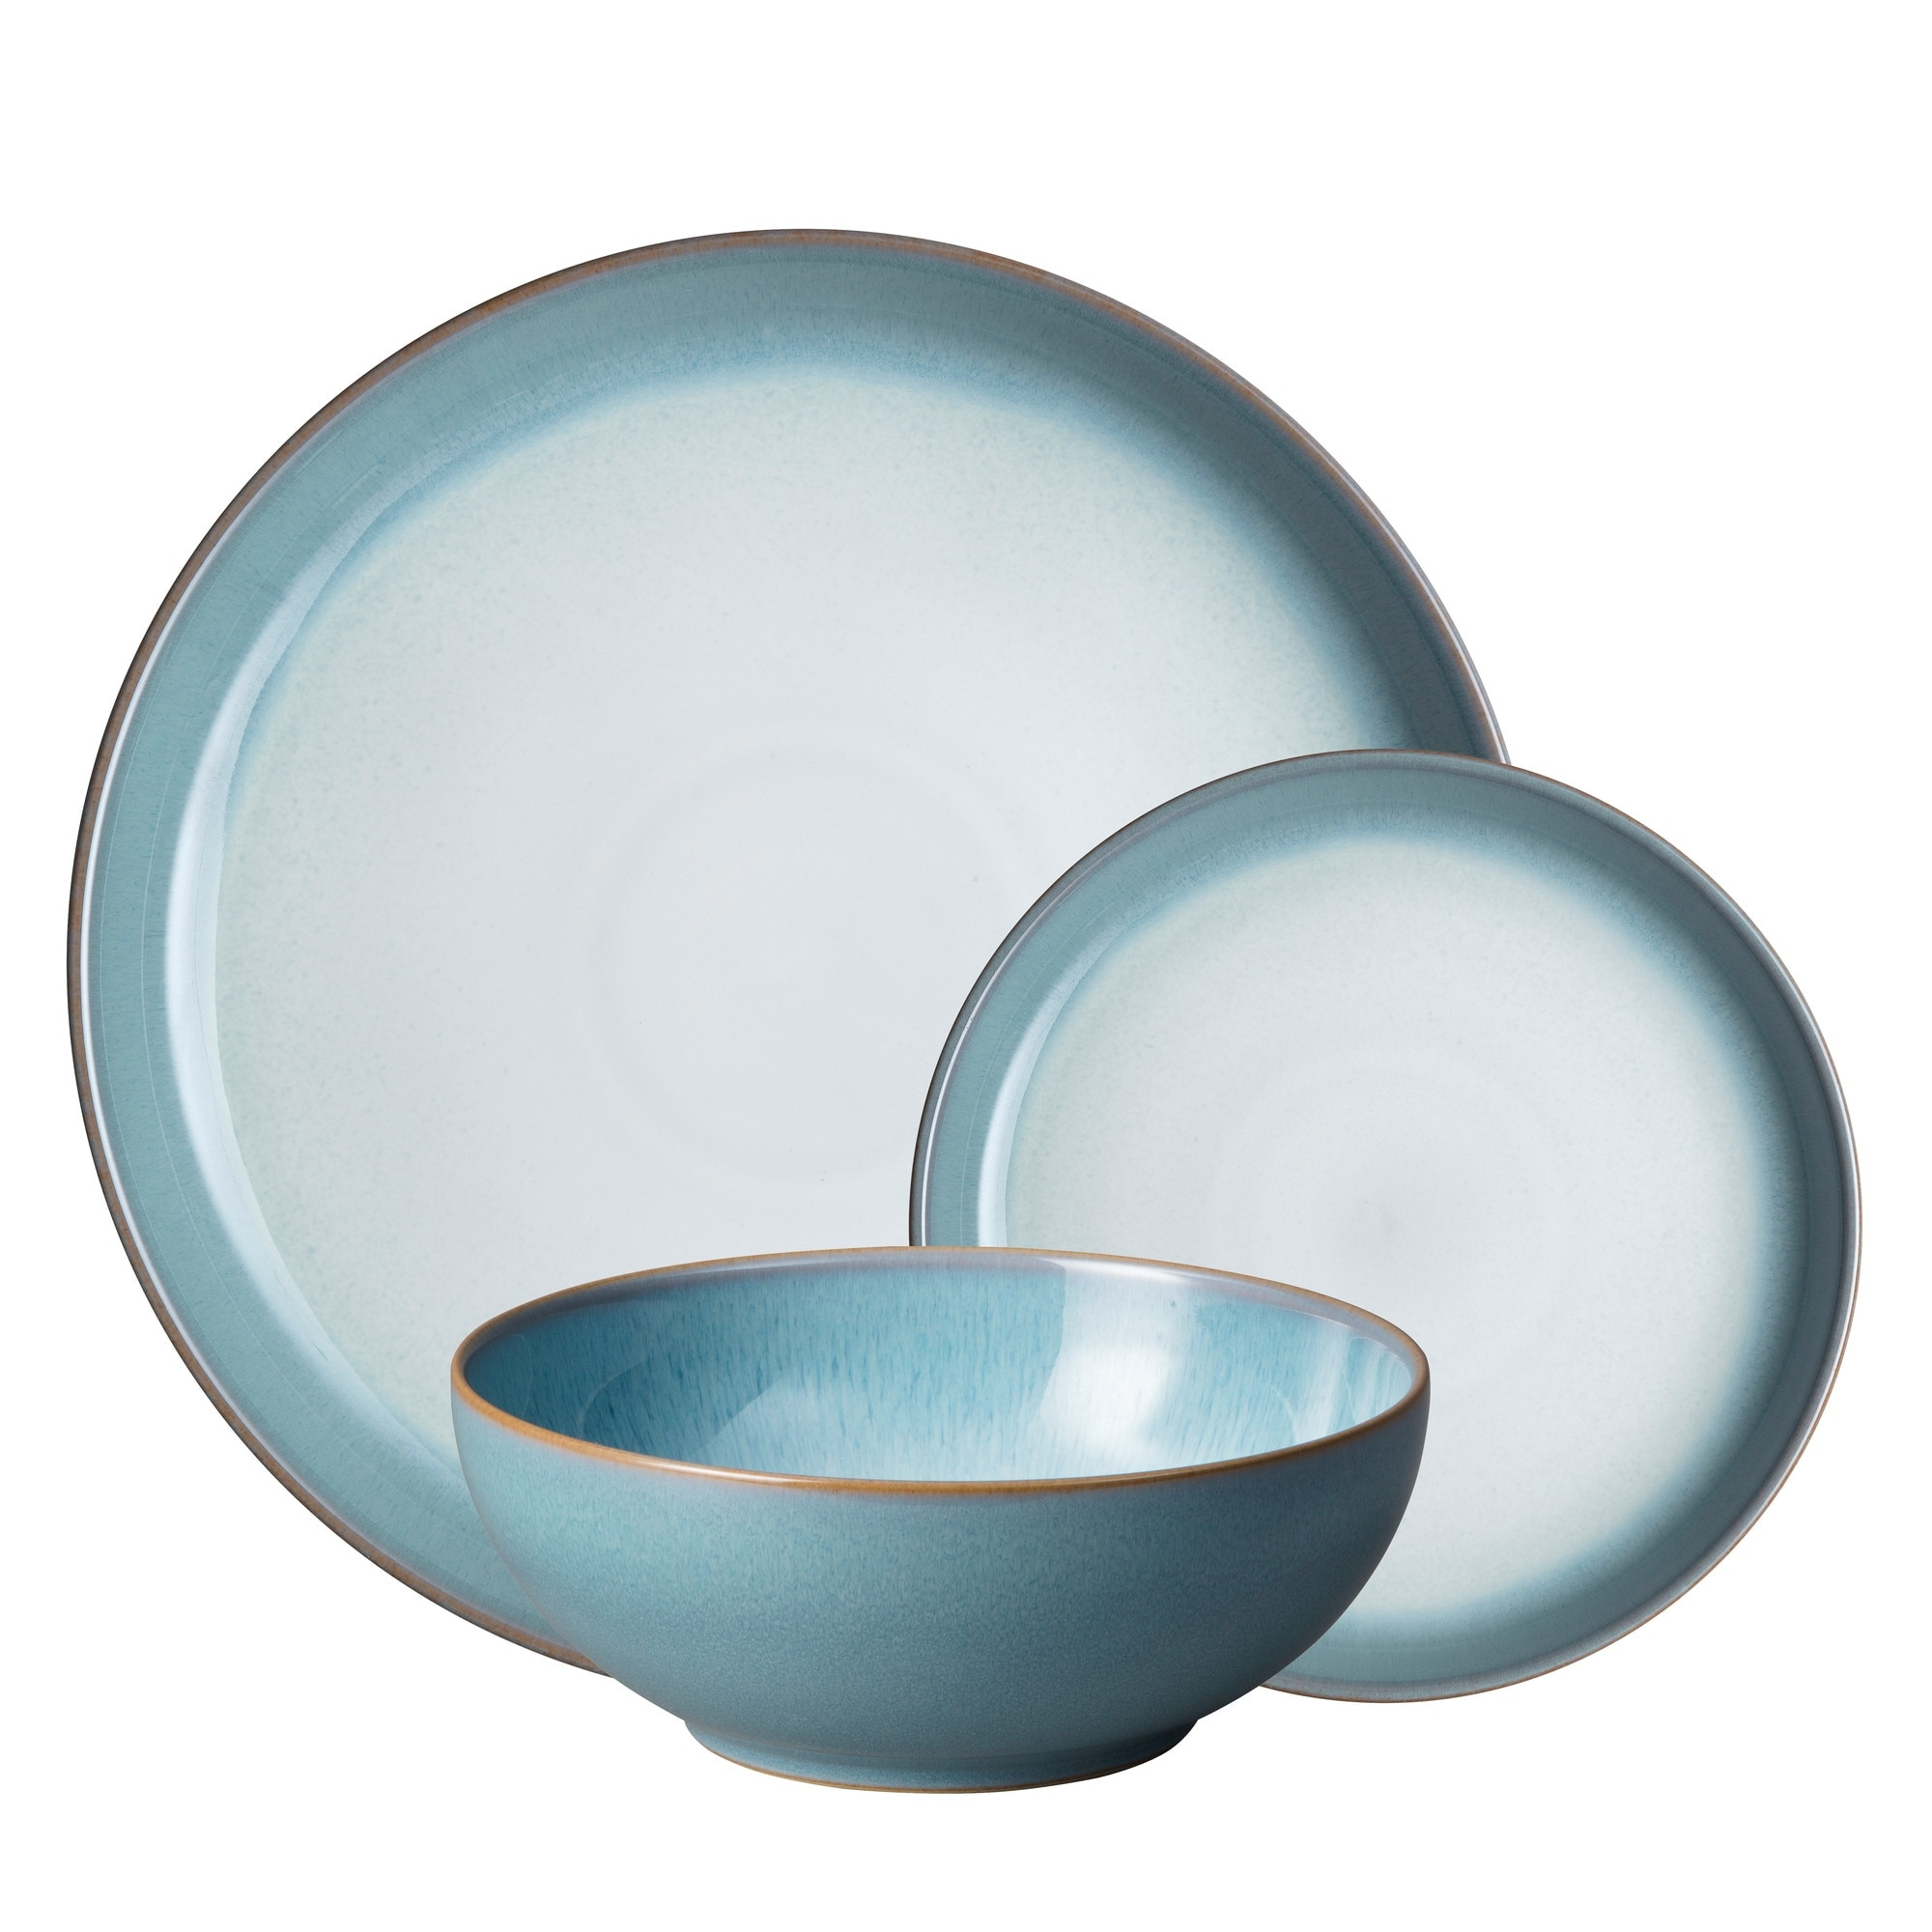 Compare retail prices of Azure Haze 12 Piece Coupe Tableware Set to get the best deal online